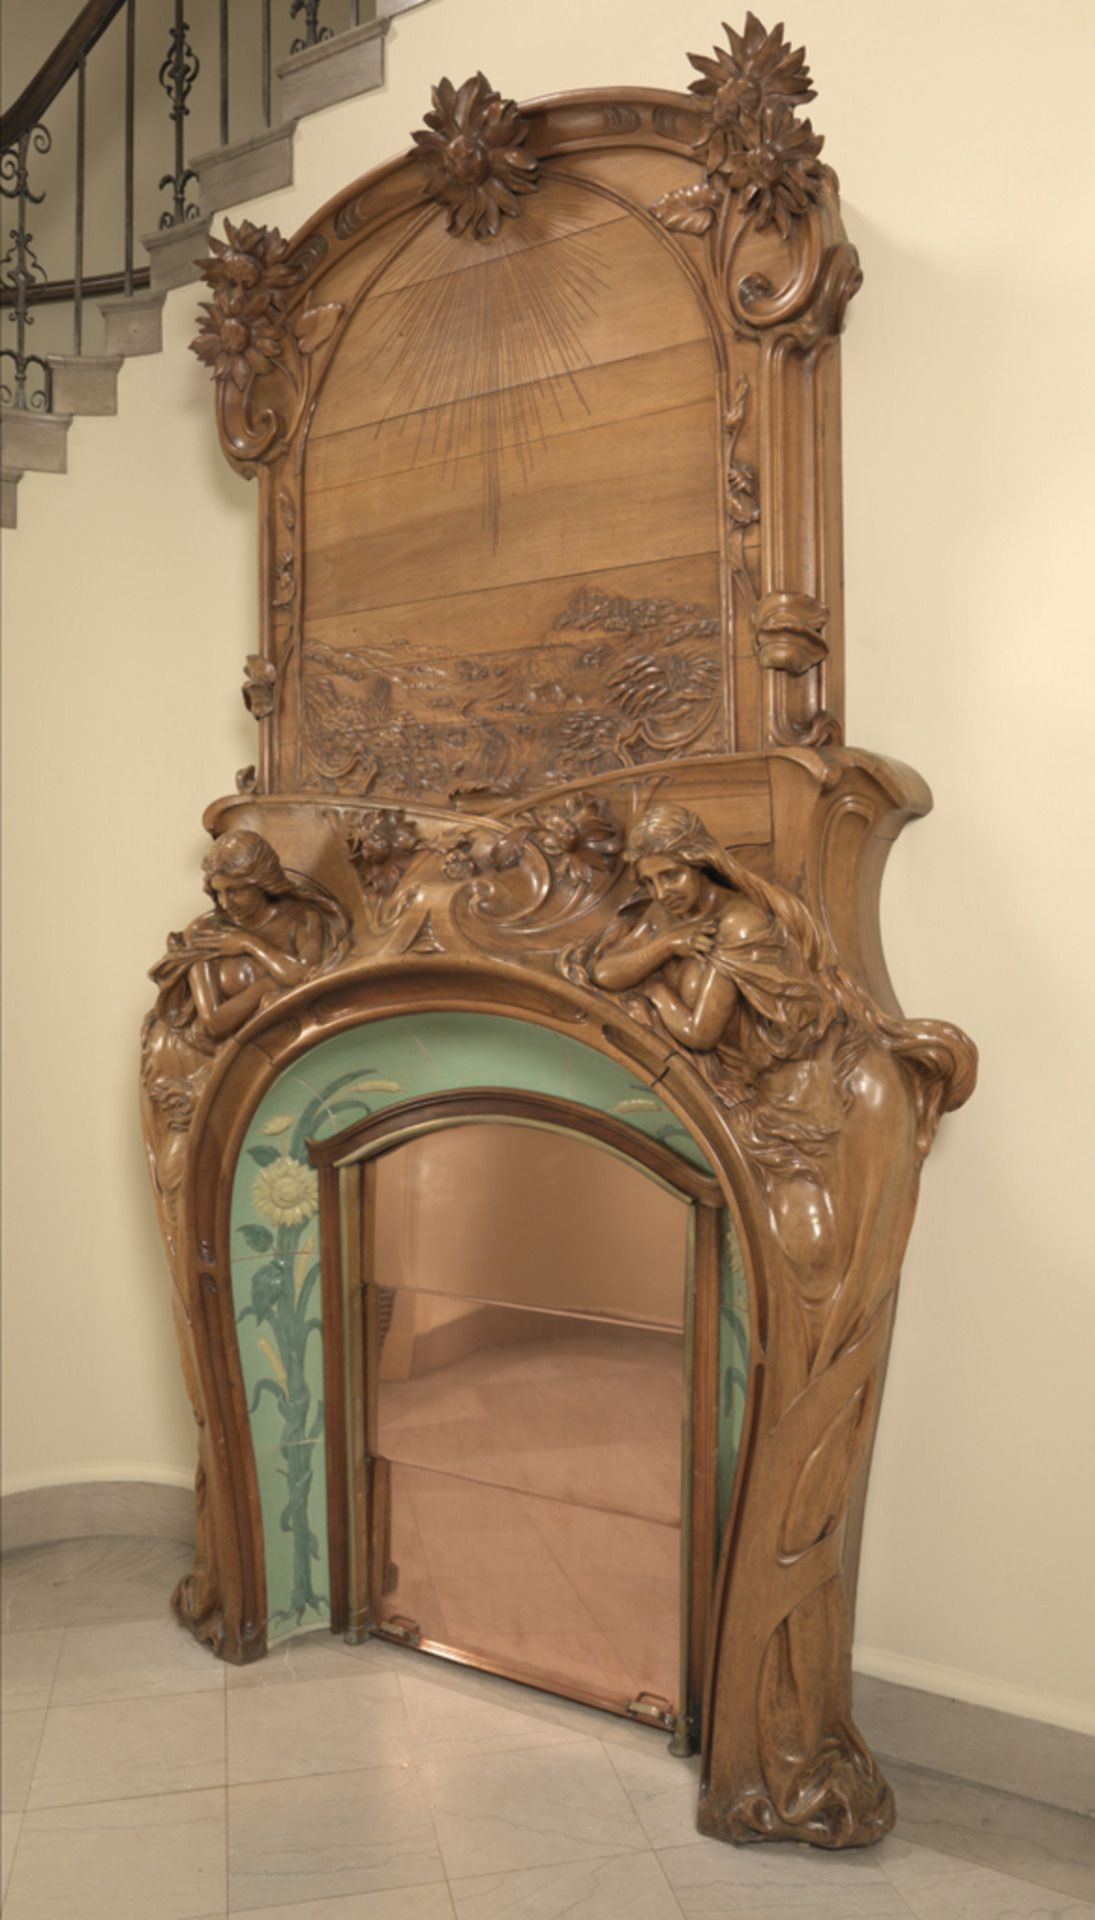 Art Nouveau Fireplaces By Emile Muller Charles Greber And Hugnet Freres Image Source 1 2 3 4 Meubles Art Deco Art Deco Art Nouveau